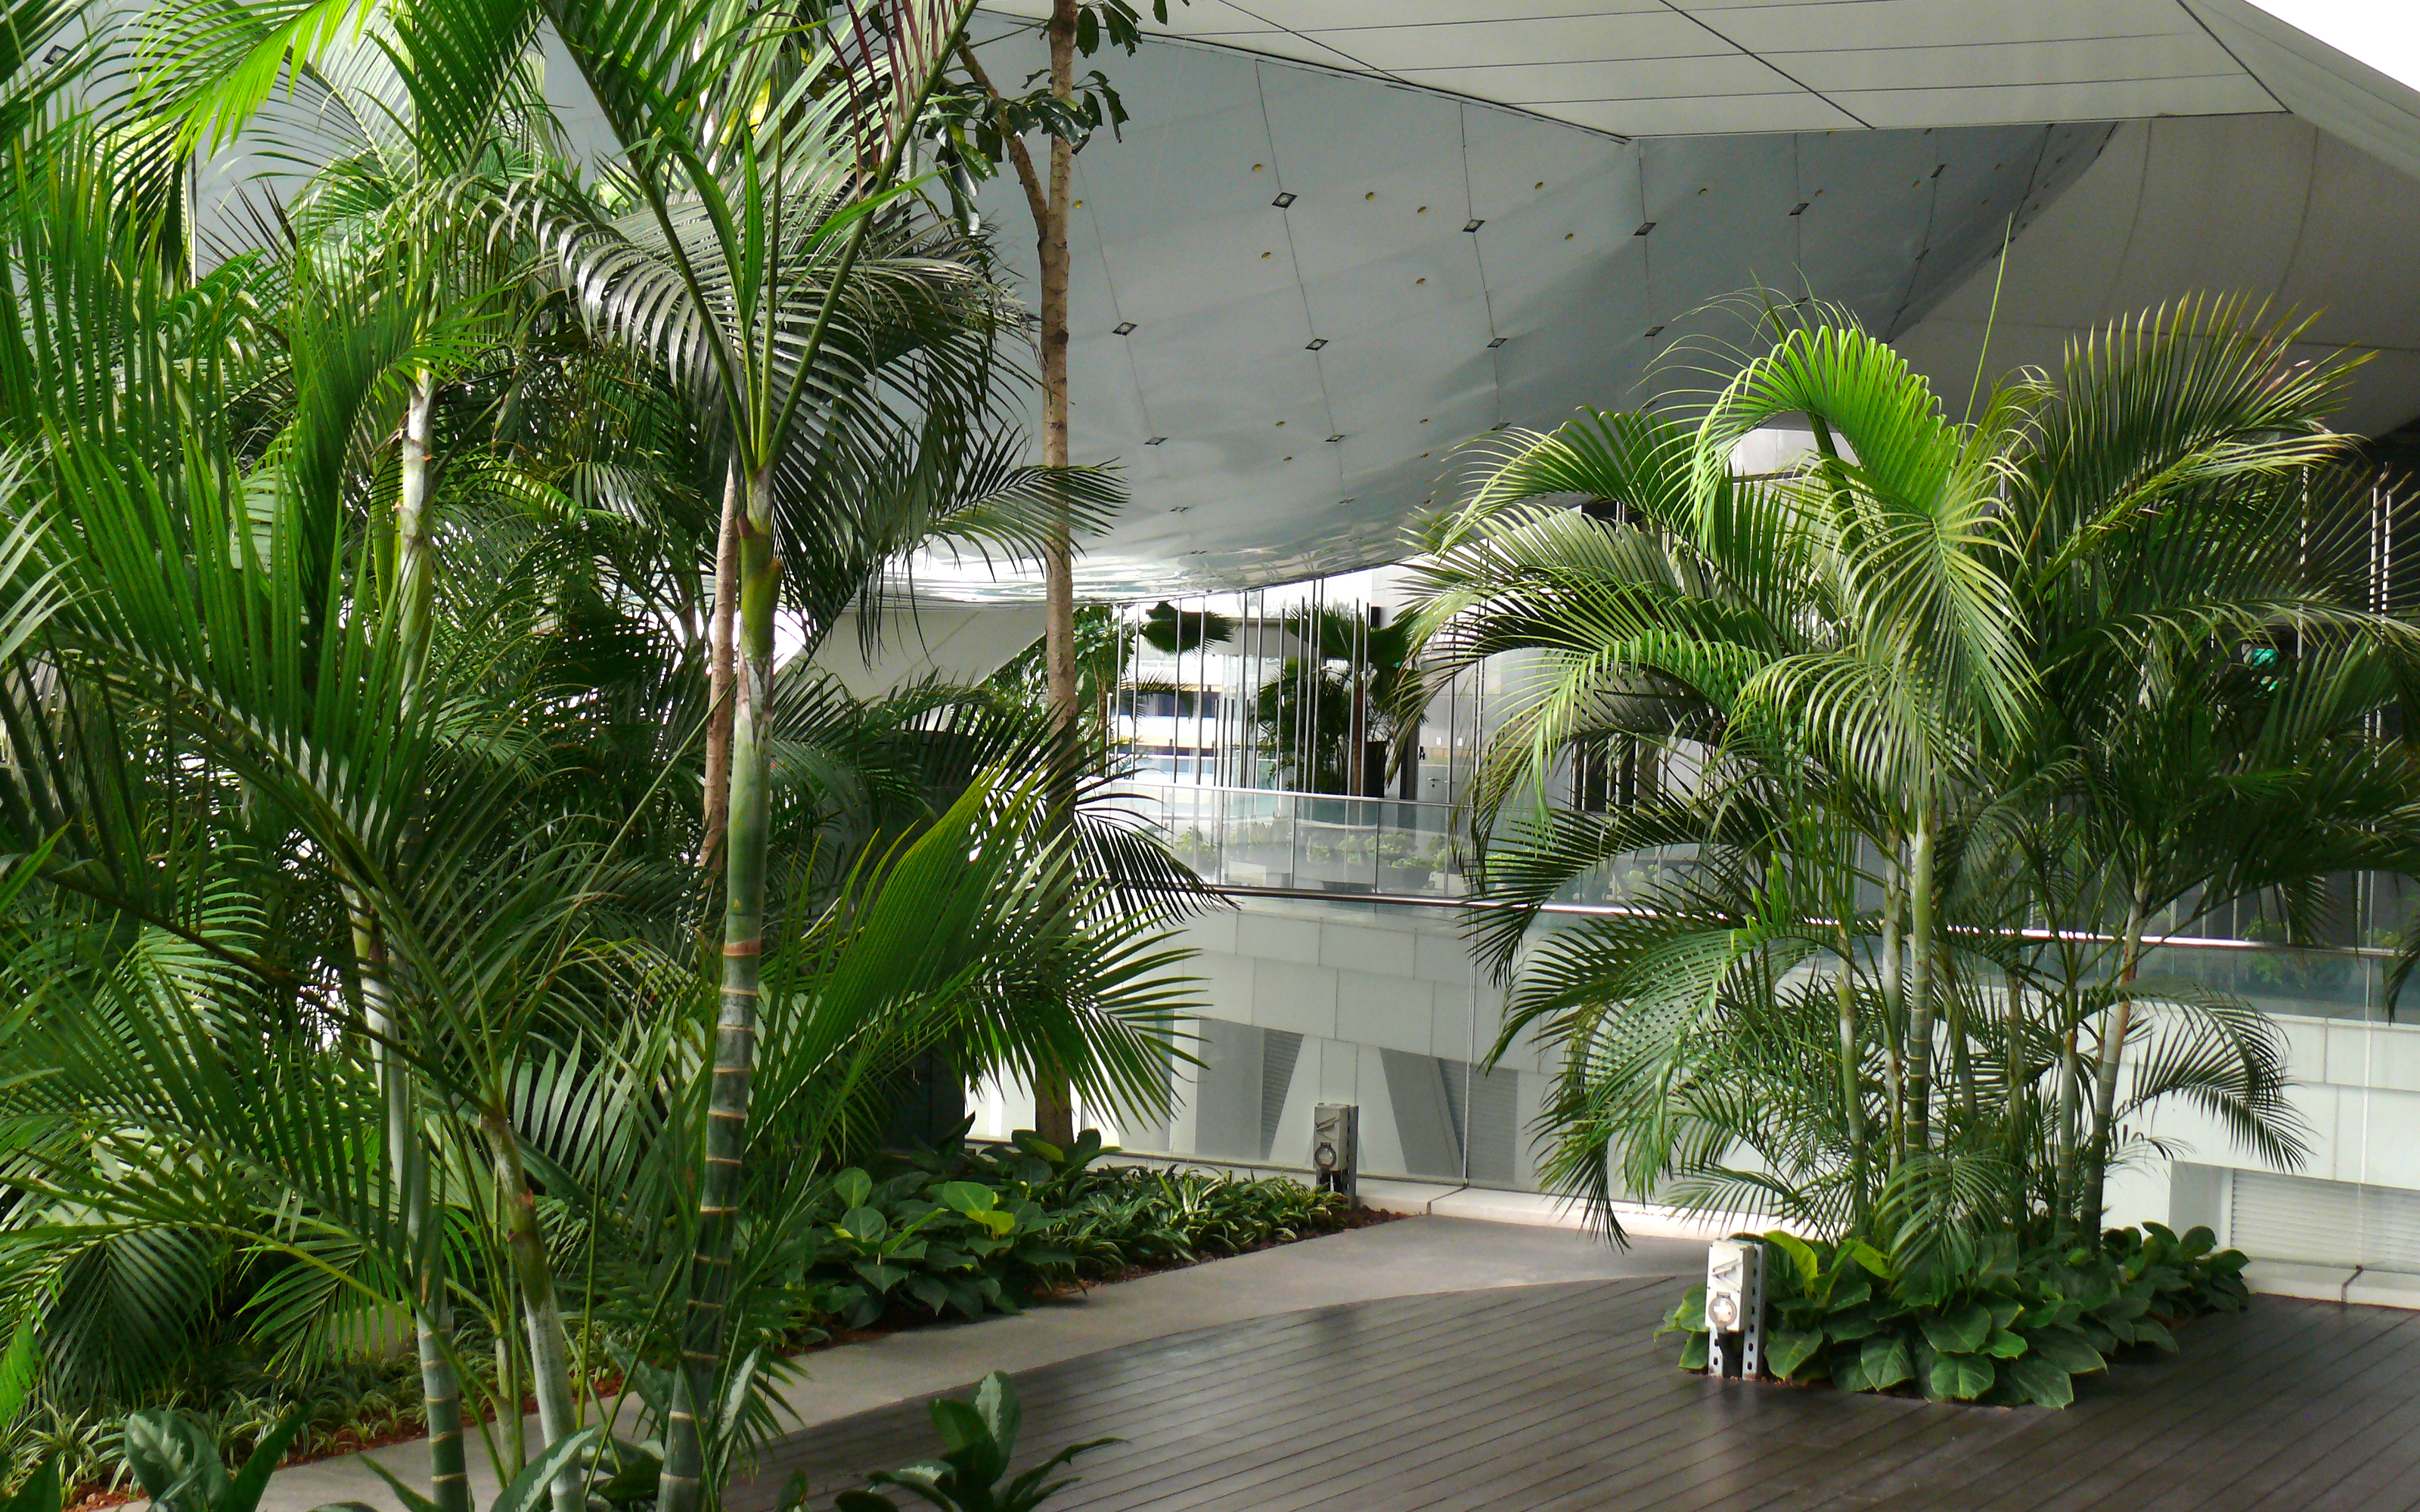 Large palm trees inside a building